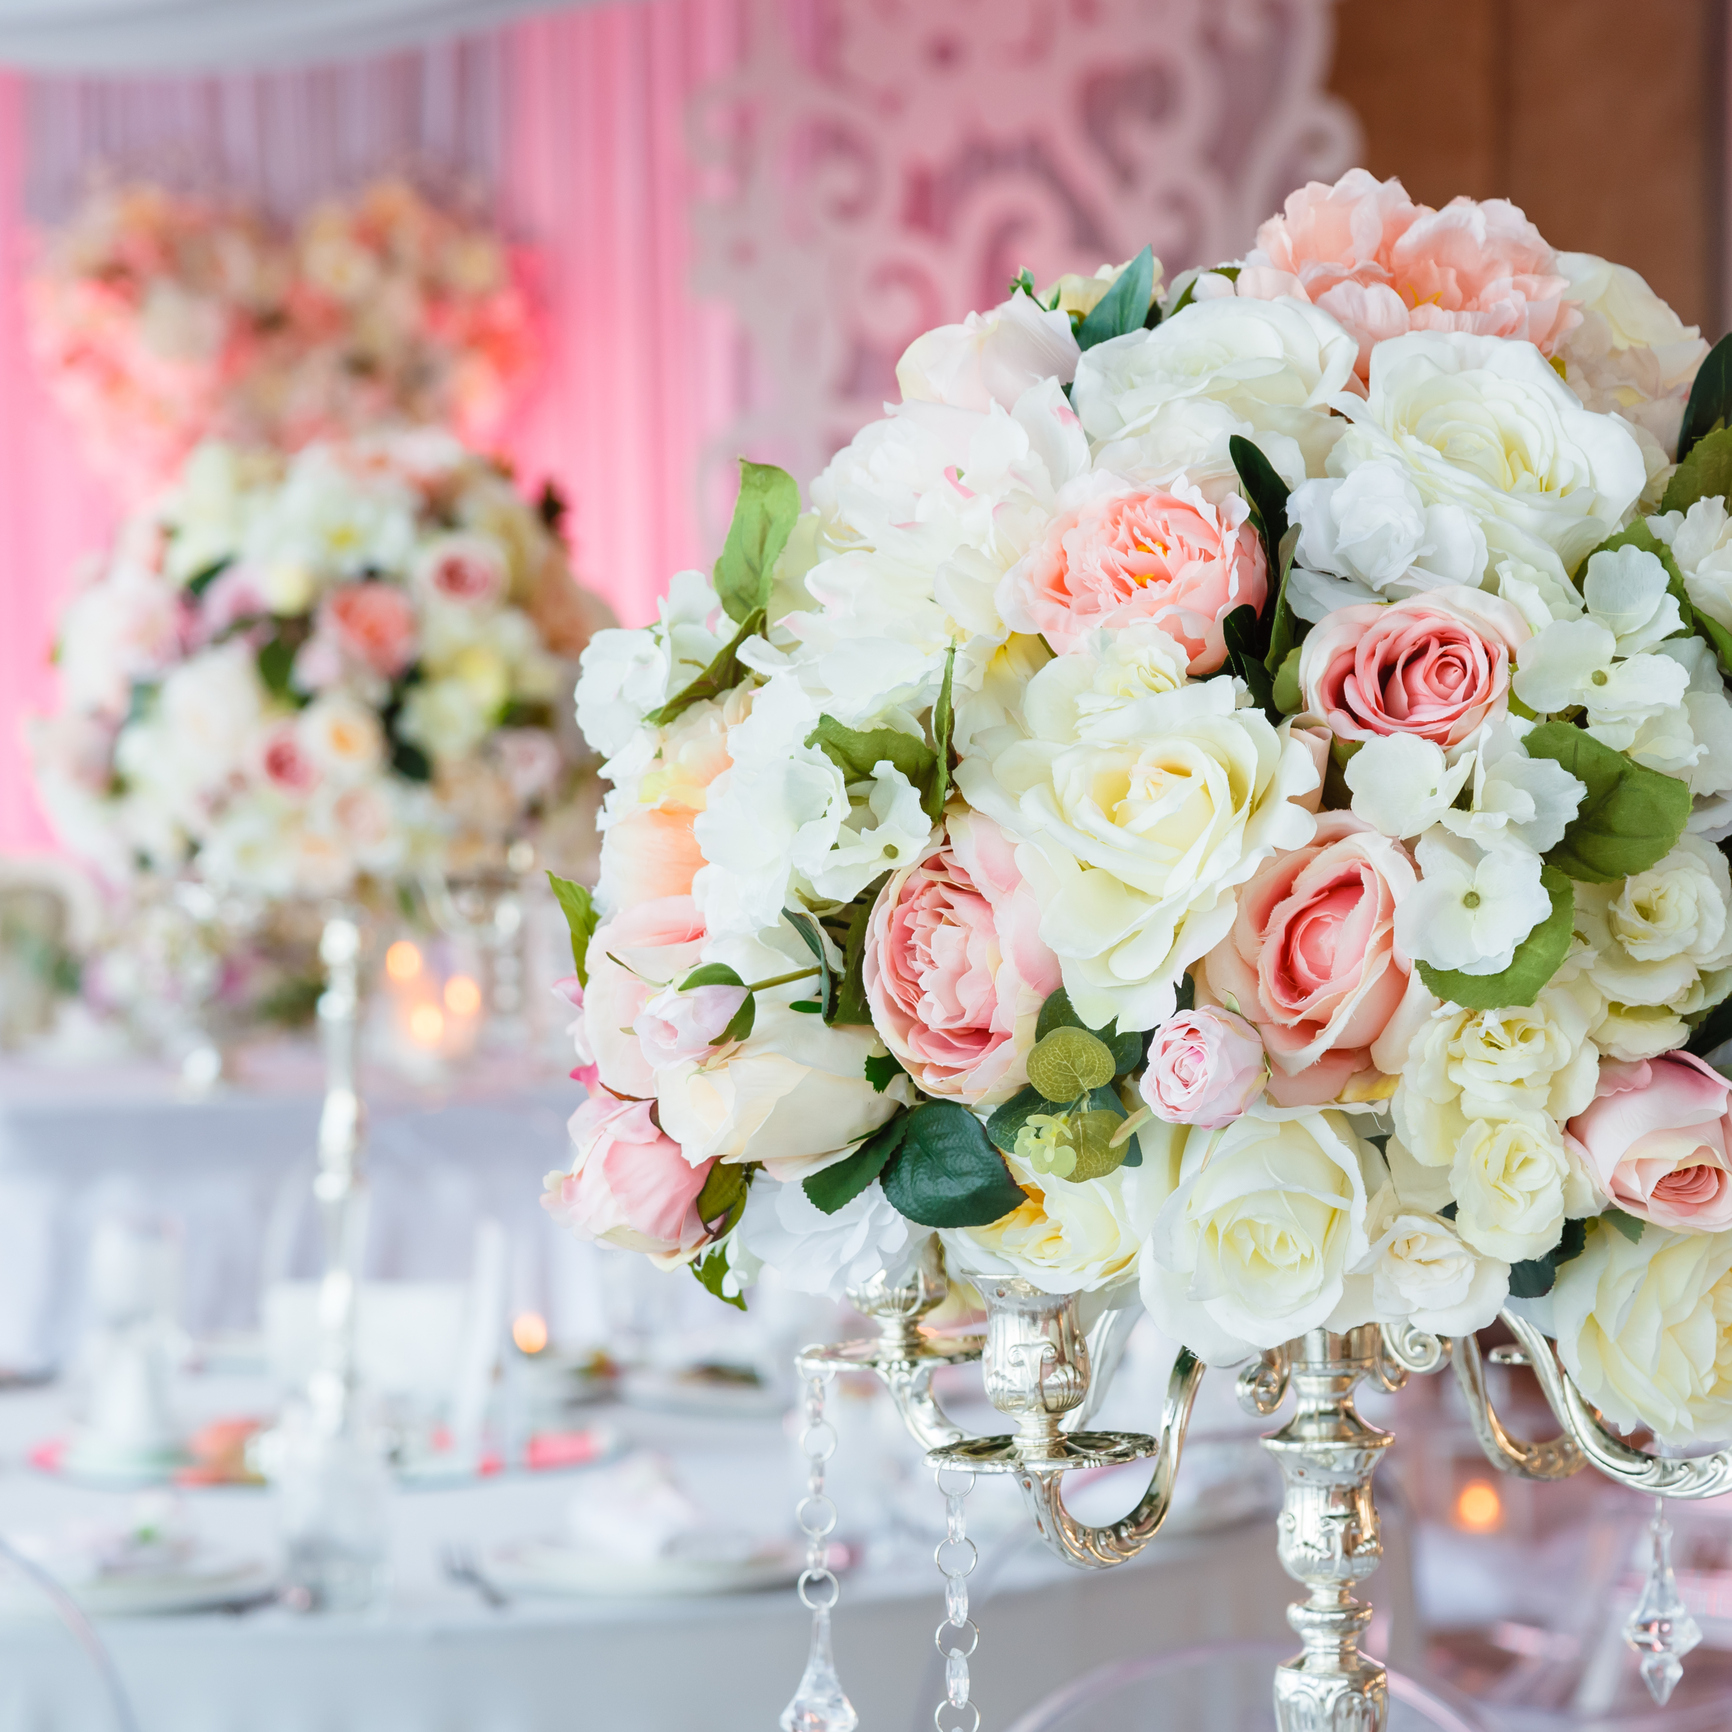 table centres. - Co-ordinating your bouquet and table flowers is a great way to continue the theme of your wedding